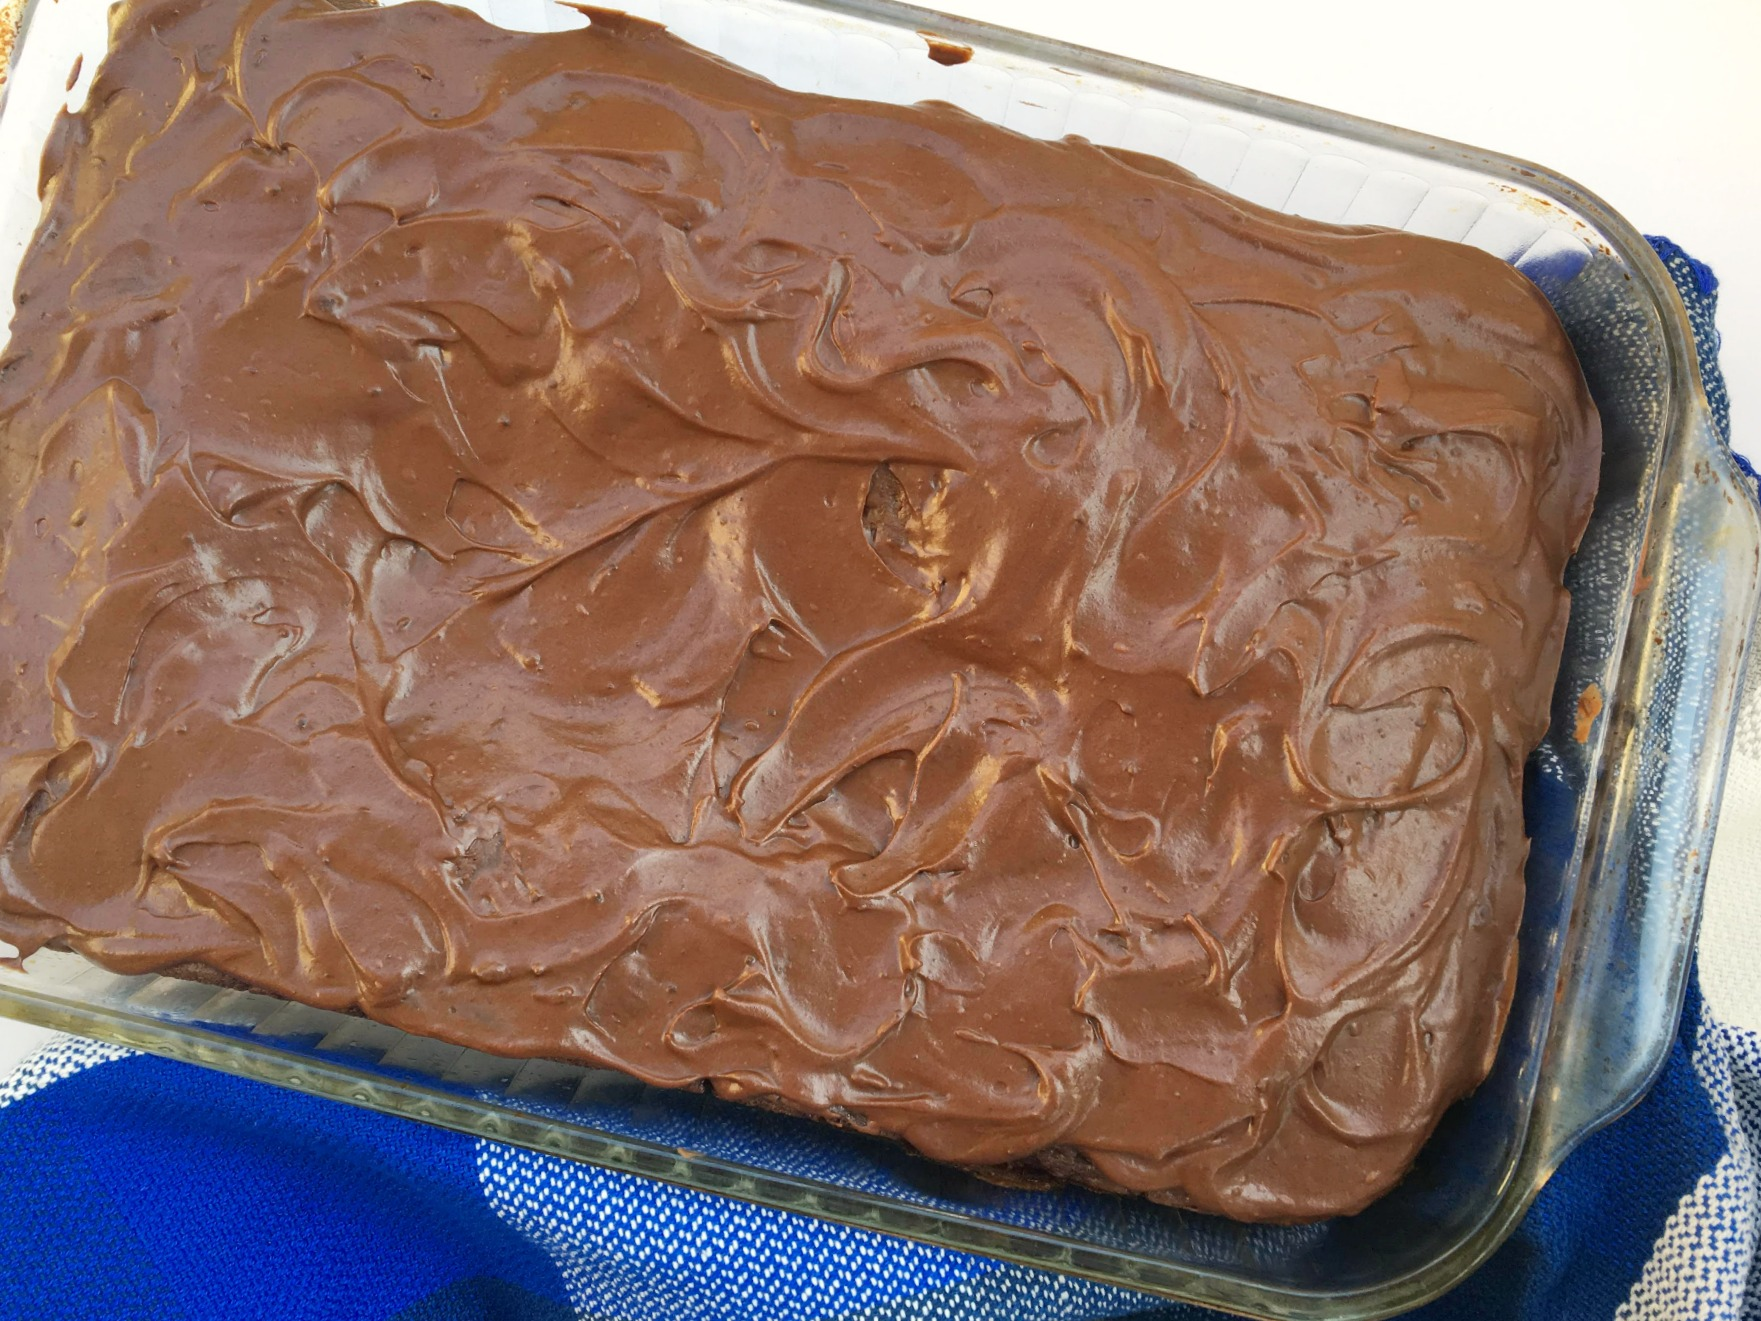 glass 13x9 pan with chocolate cake covered in chocolate frosting with a blue tea towel underneath